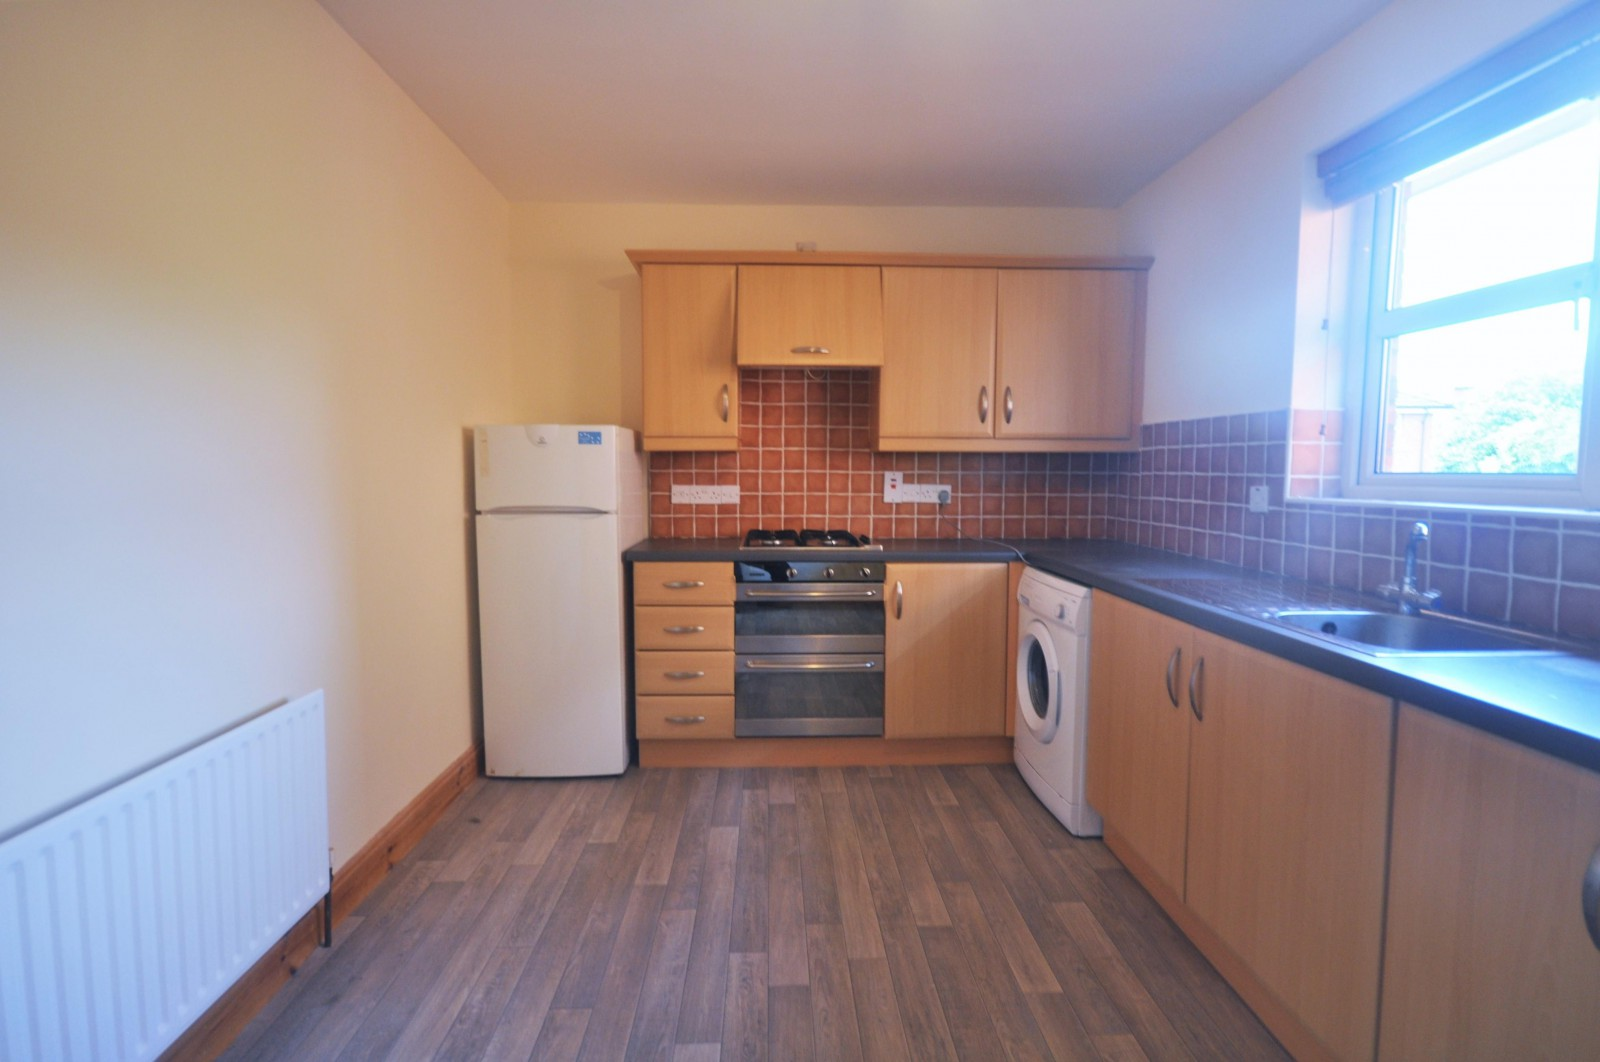 Apt 16 Downview Drive, Donegal Park Avenue, Belfast BT15 4GF